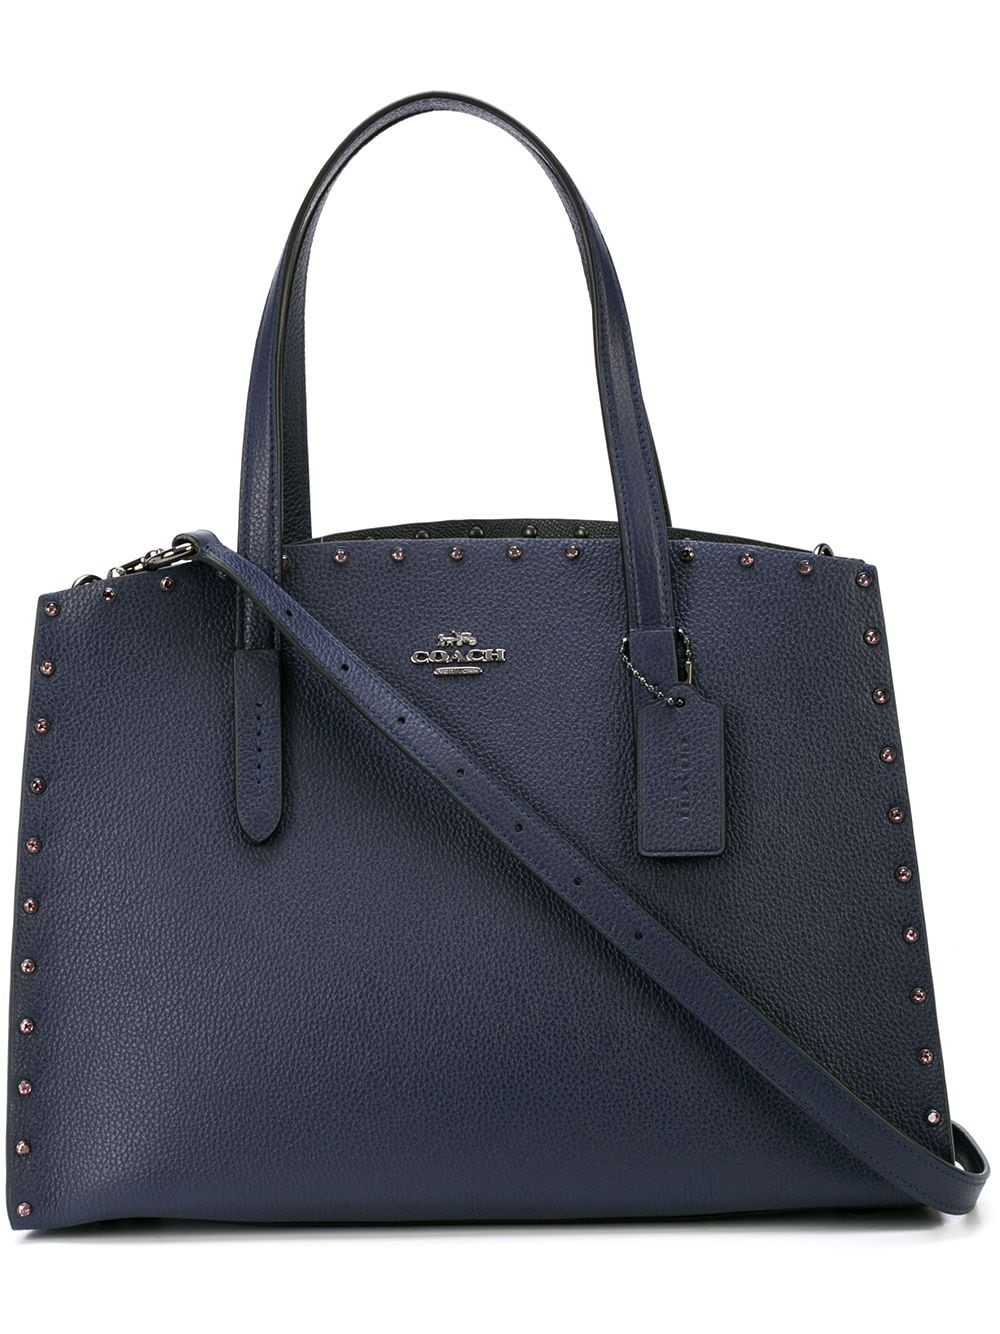 Crystal Rivet Charlie Carryall Bag